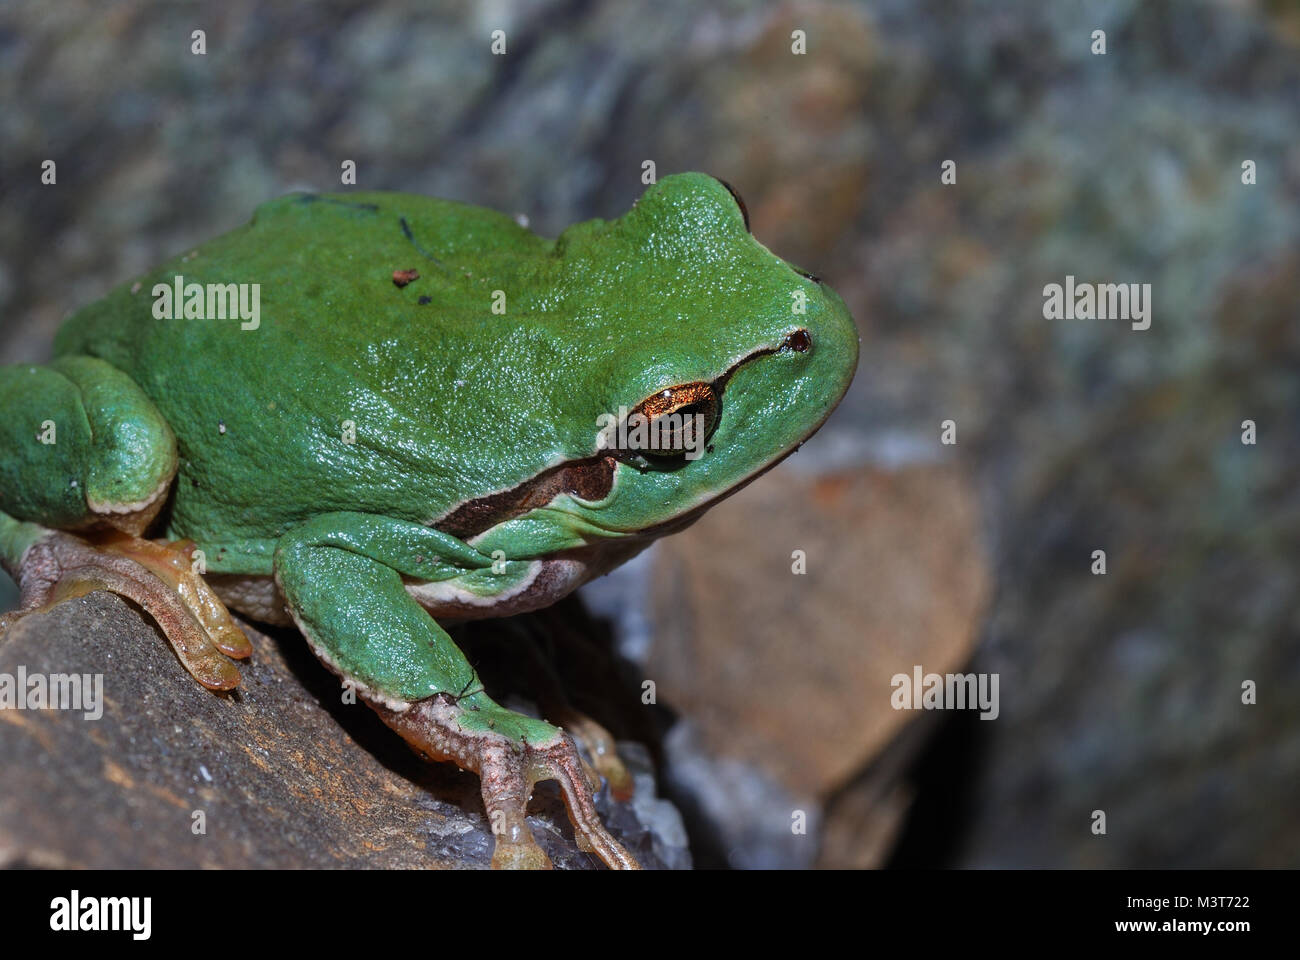 little green frog is sitting on a stone - Stock Image